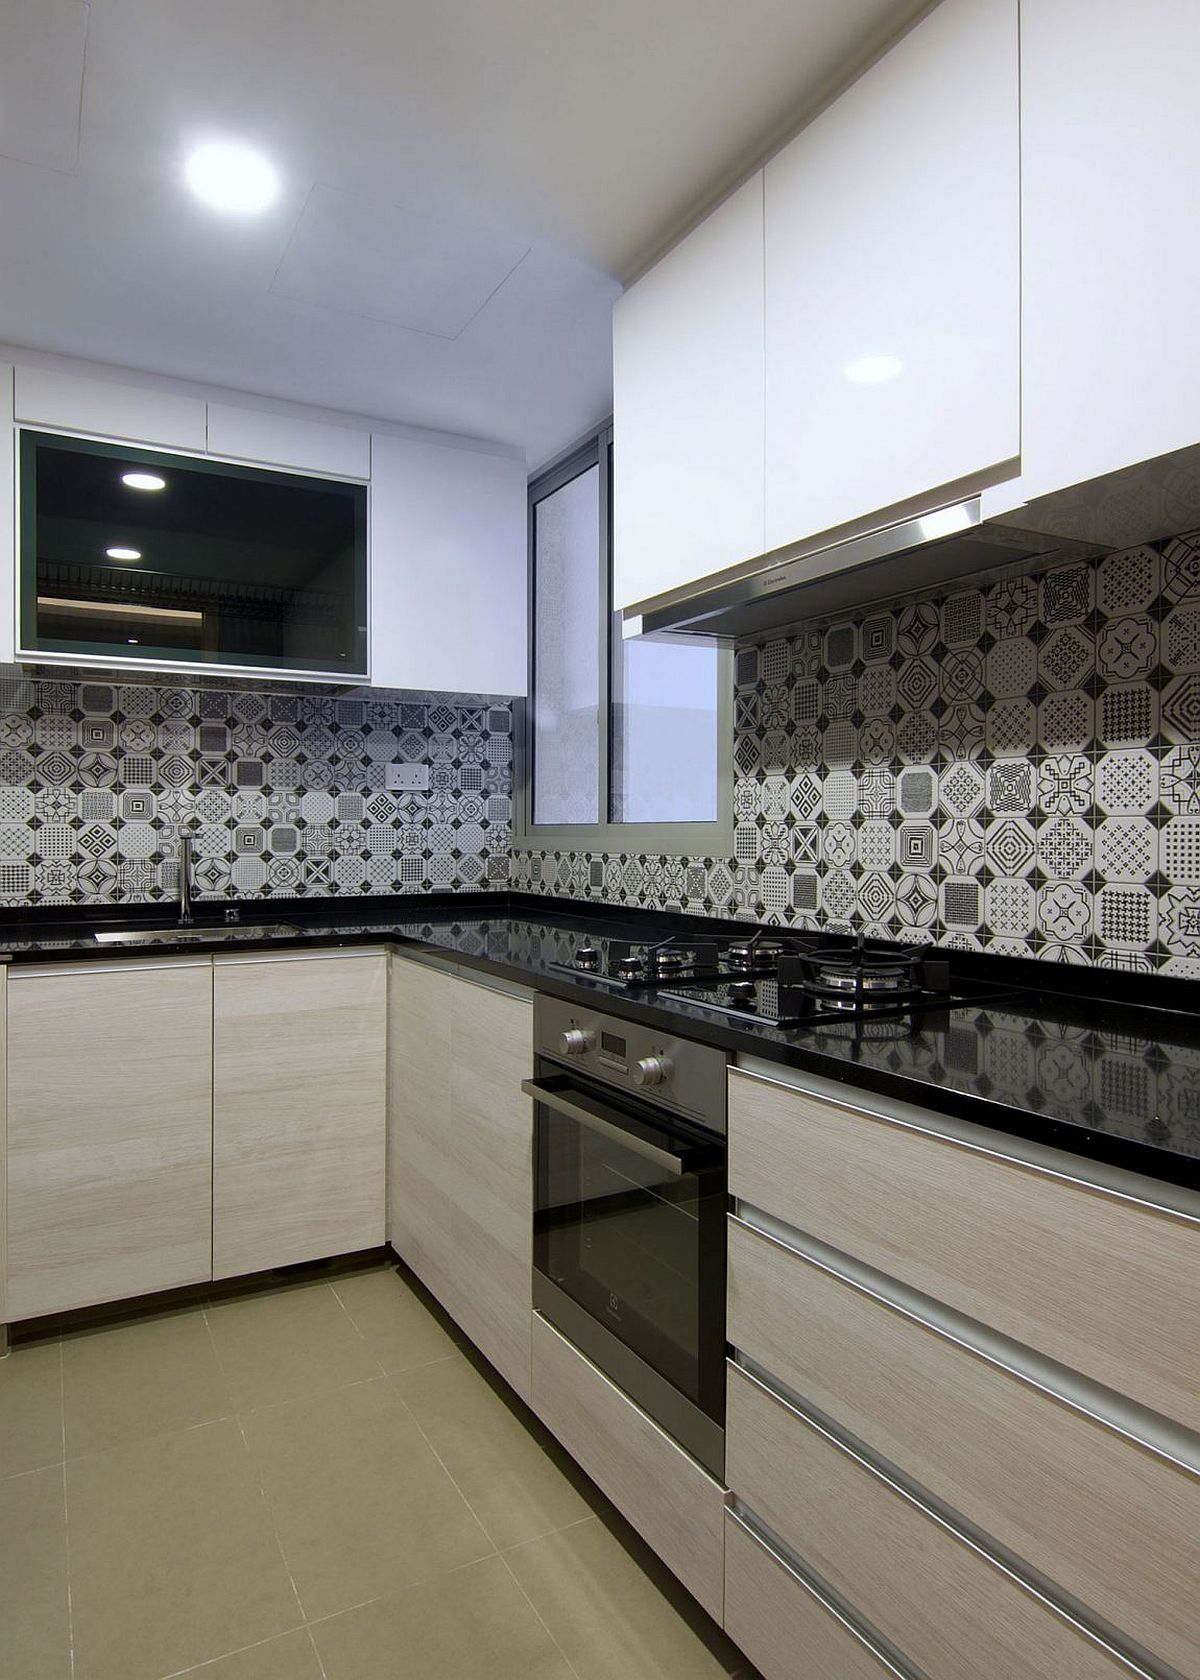 Stylish kitchen backsplash with patterned tiles in black and white decoist Kitchen backsplash ideas singapore